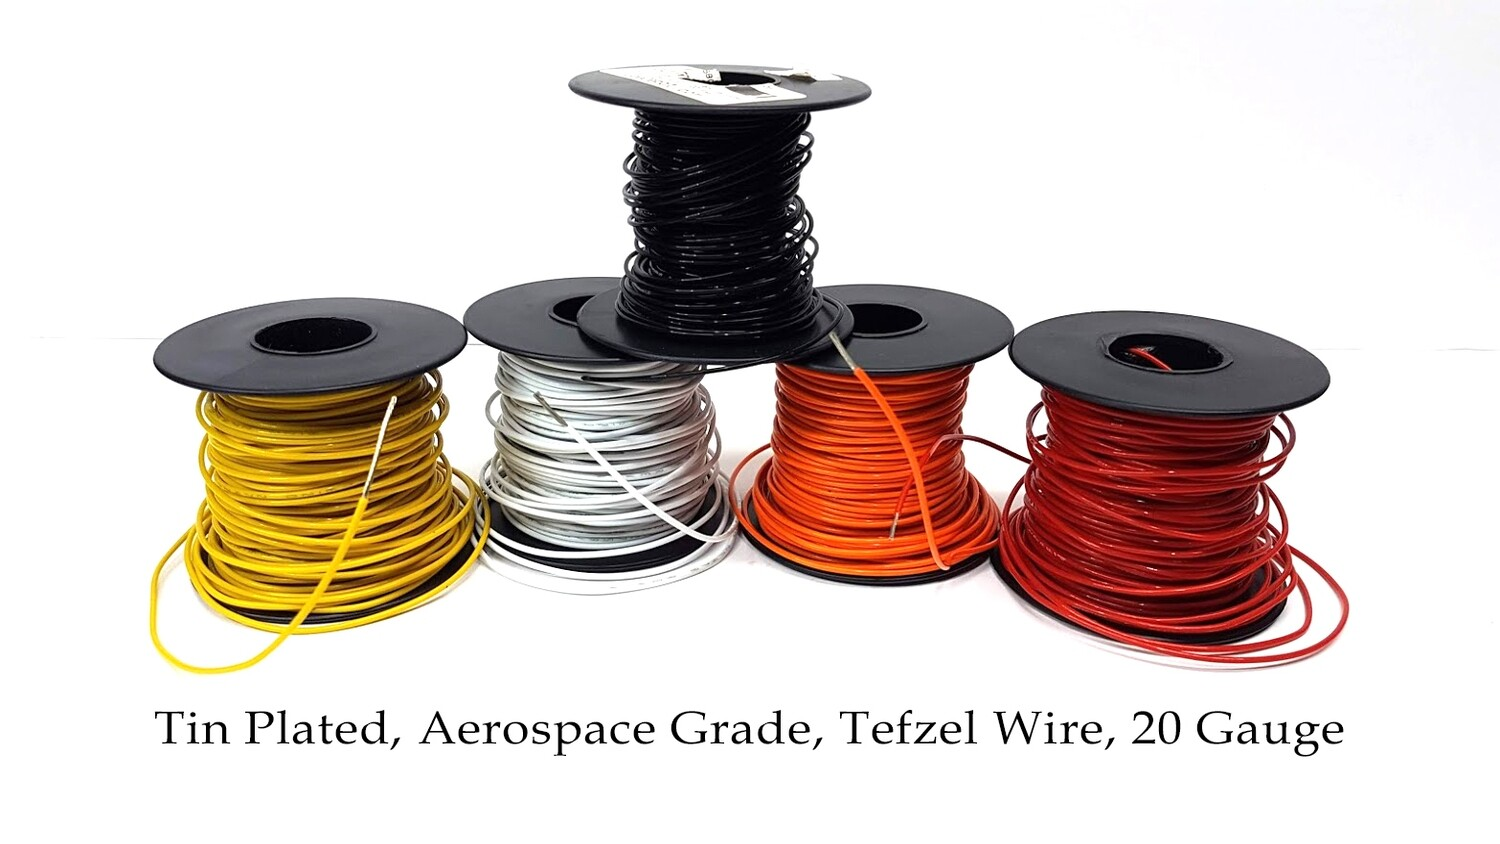 1 Foot Tin Plated, Aerospace Grade, Tefzel Wire